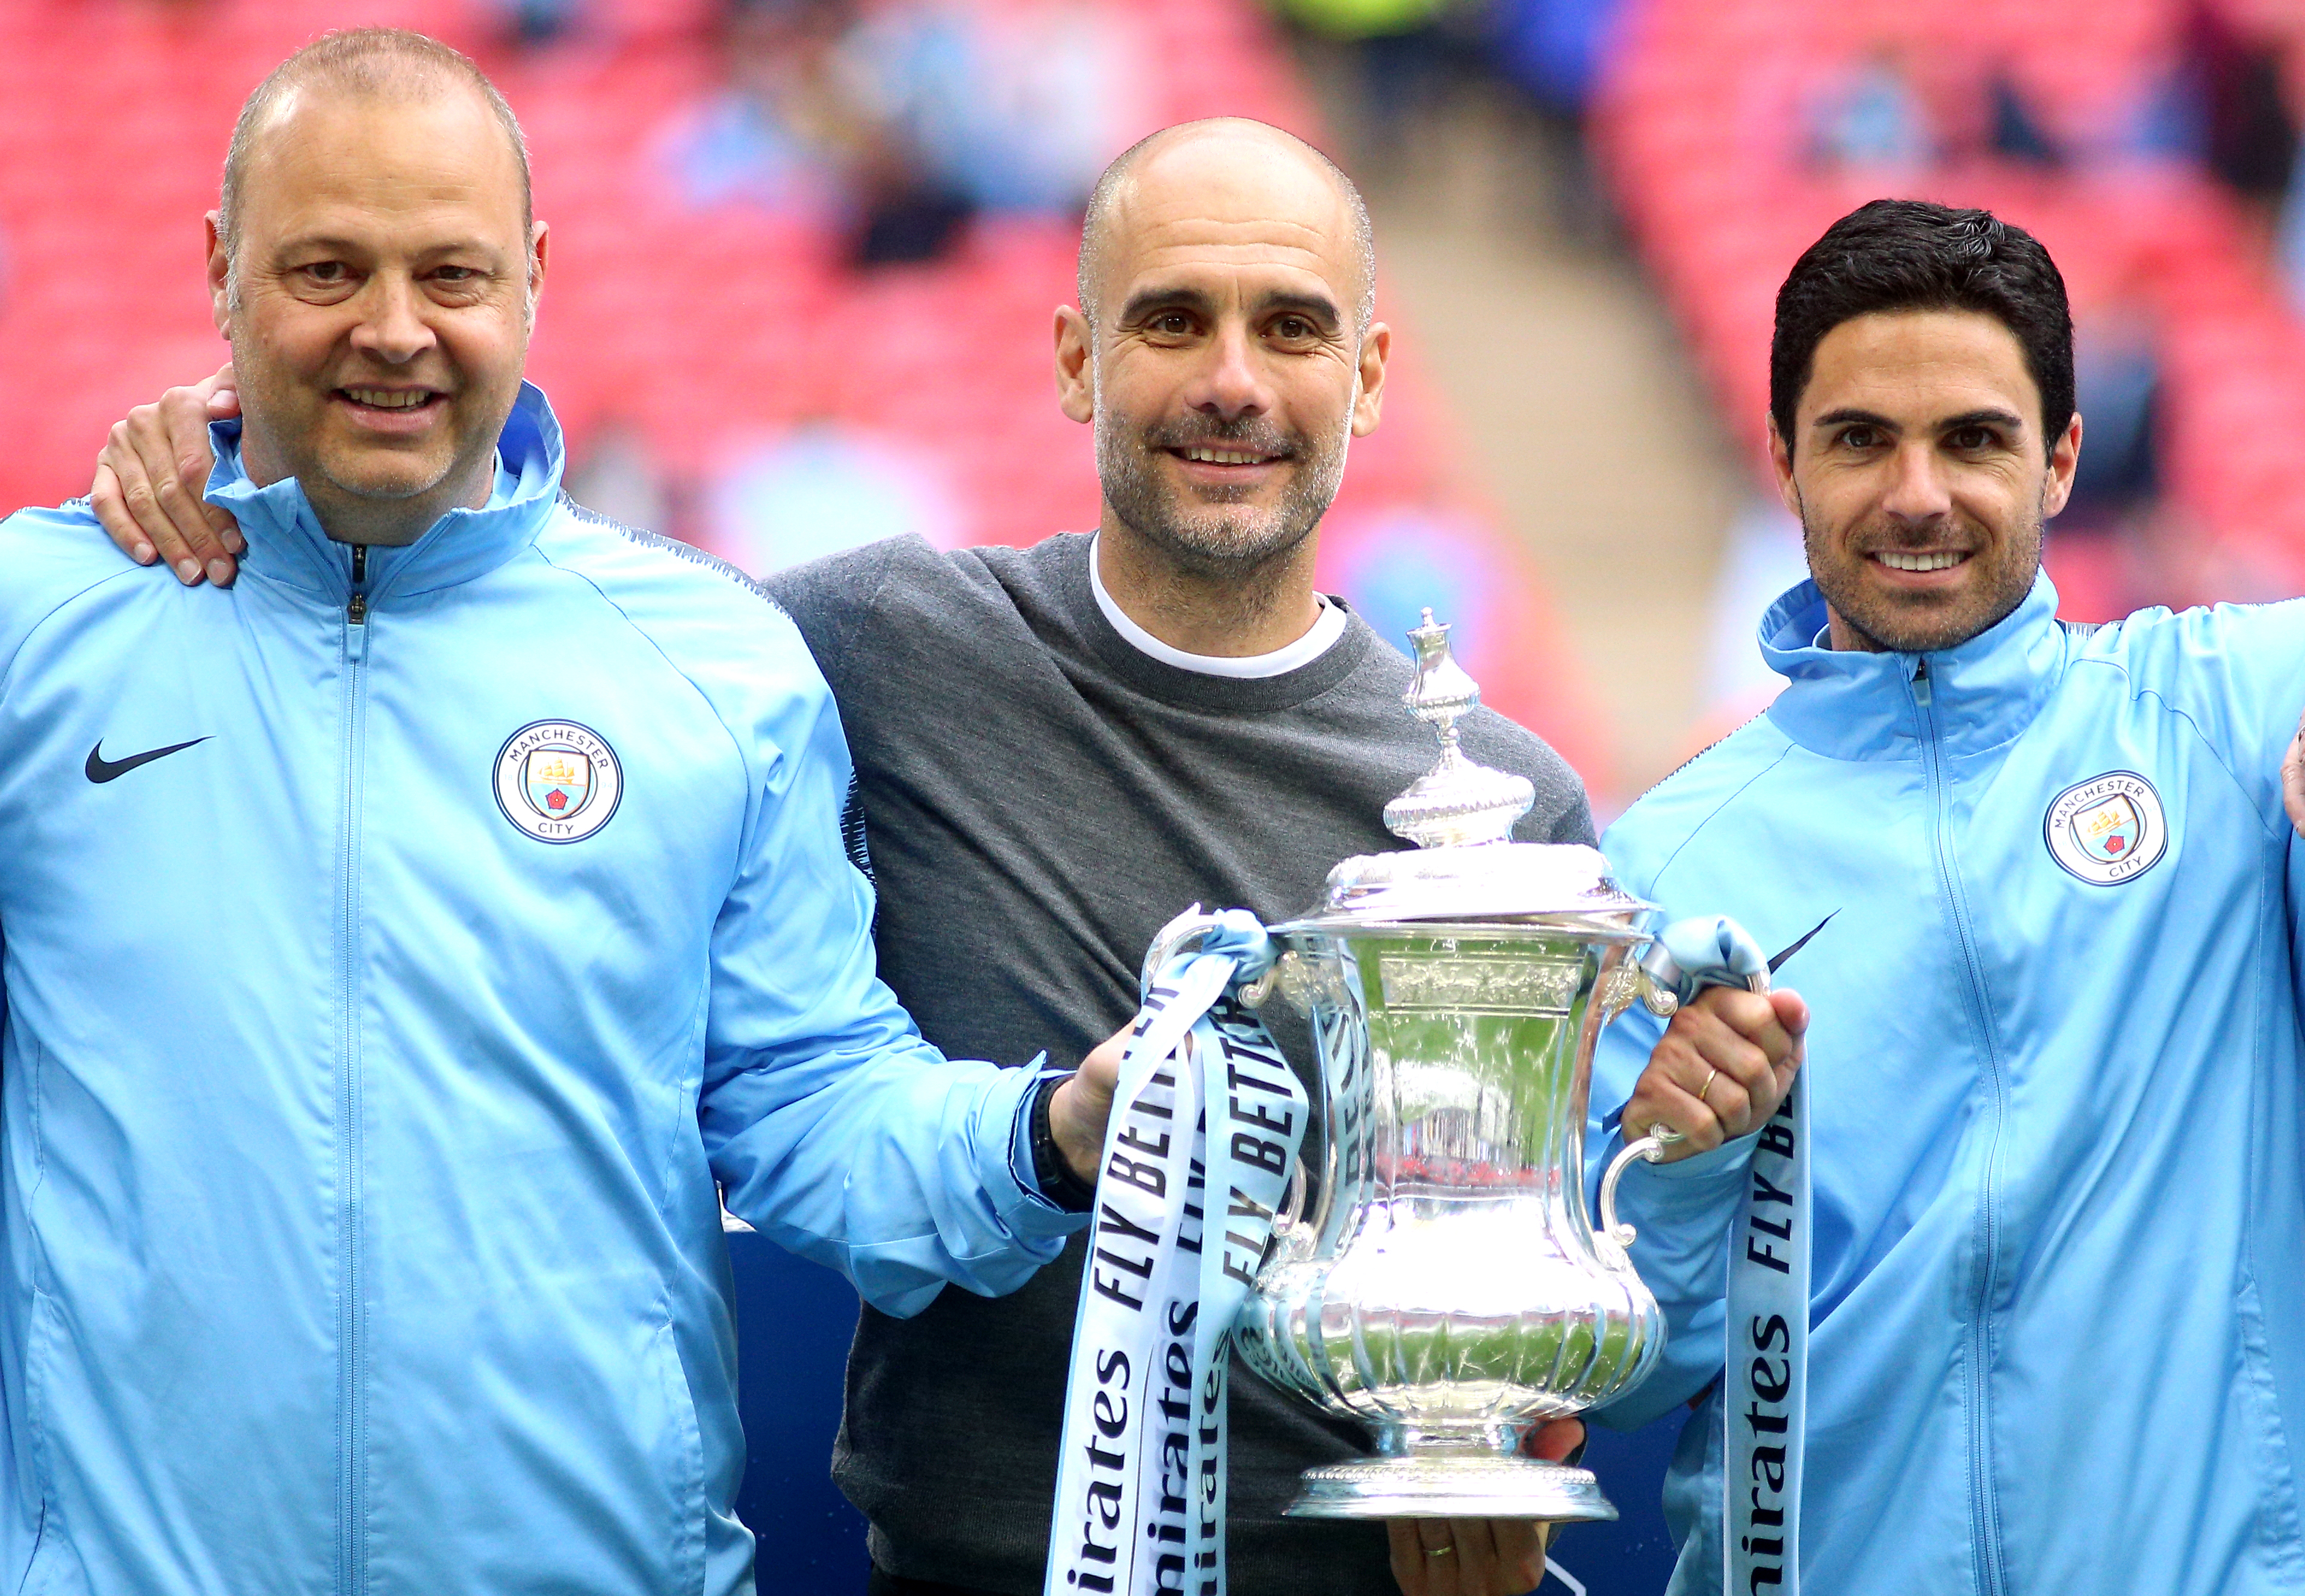 Pep Guardiola reveals his target next season with Manchester City